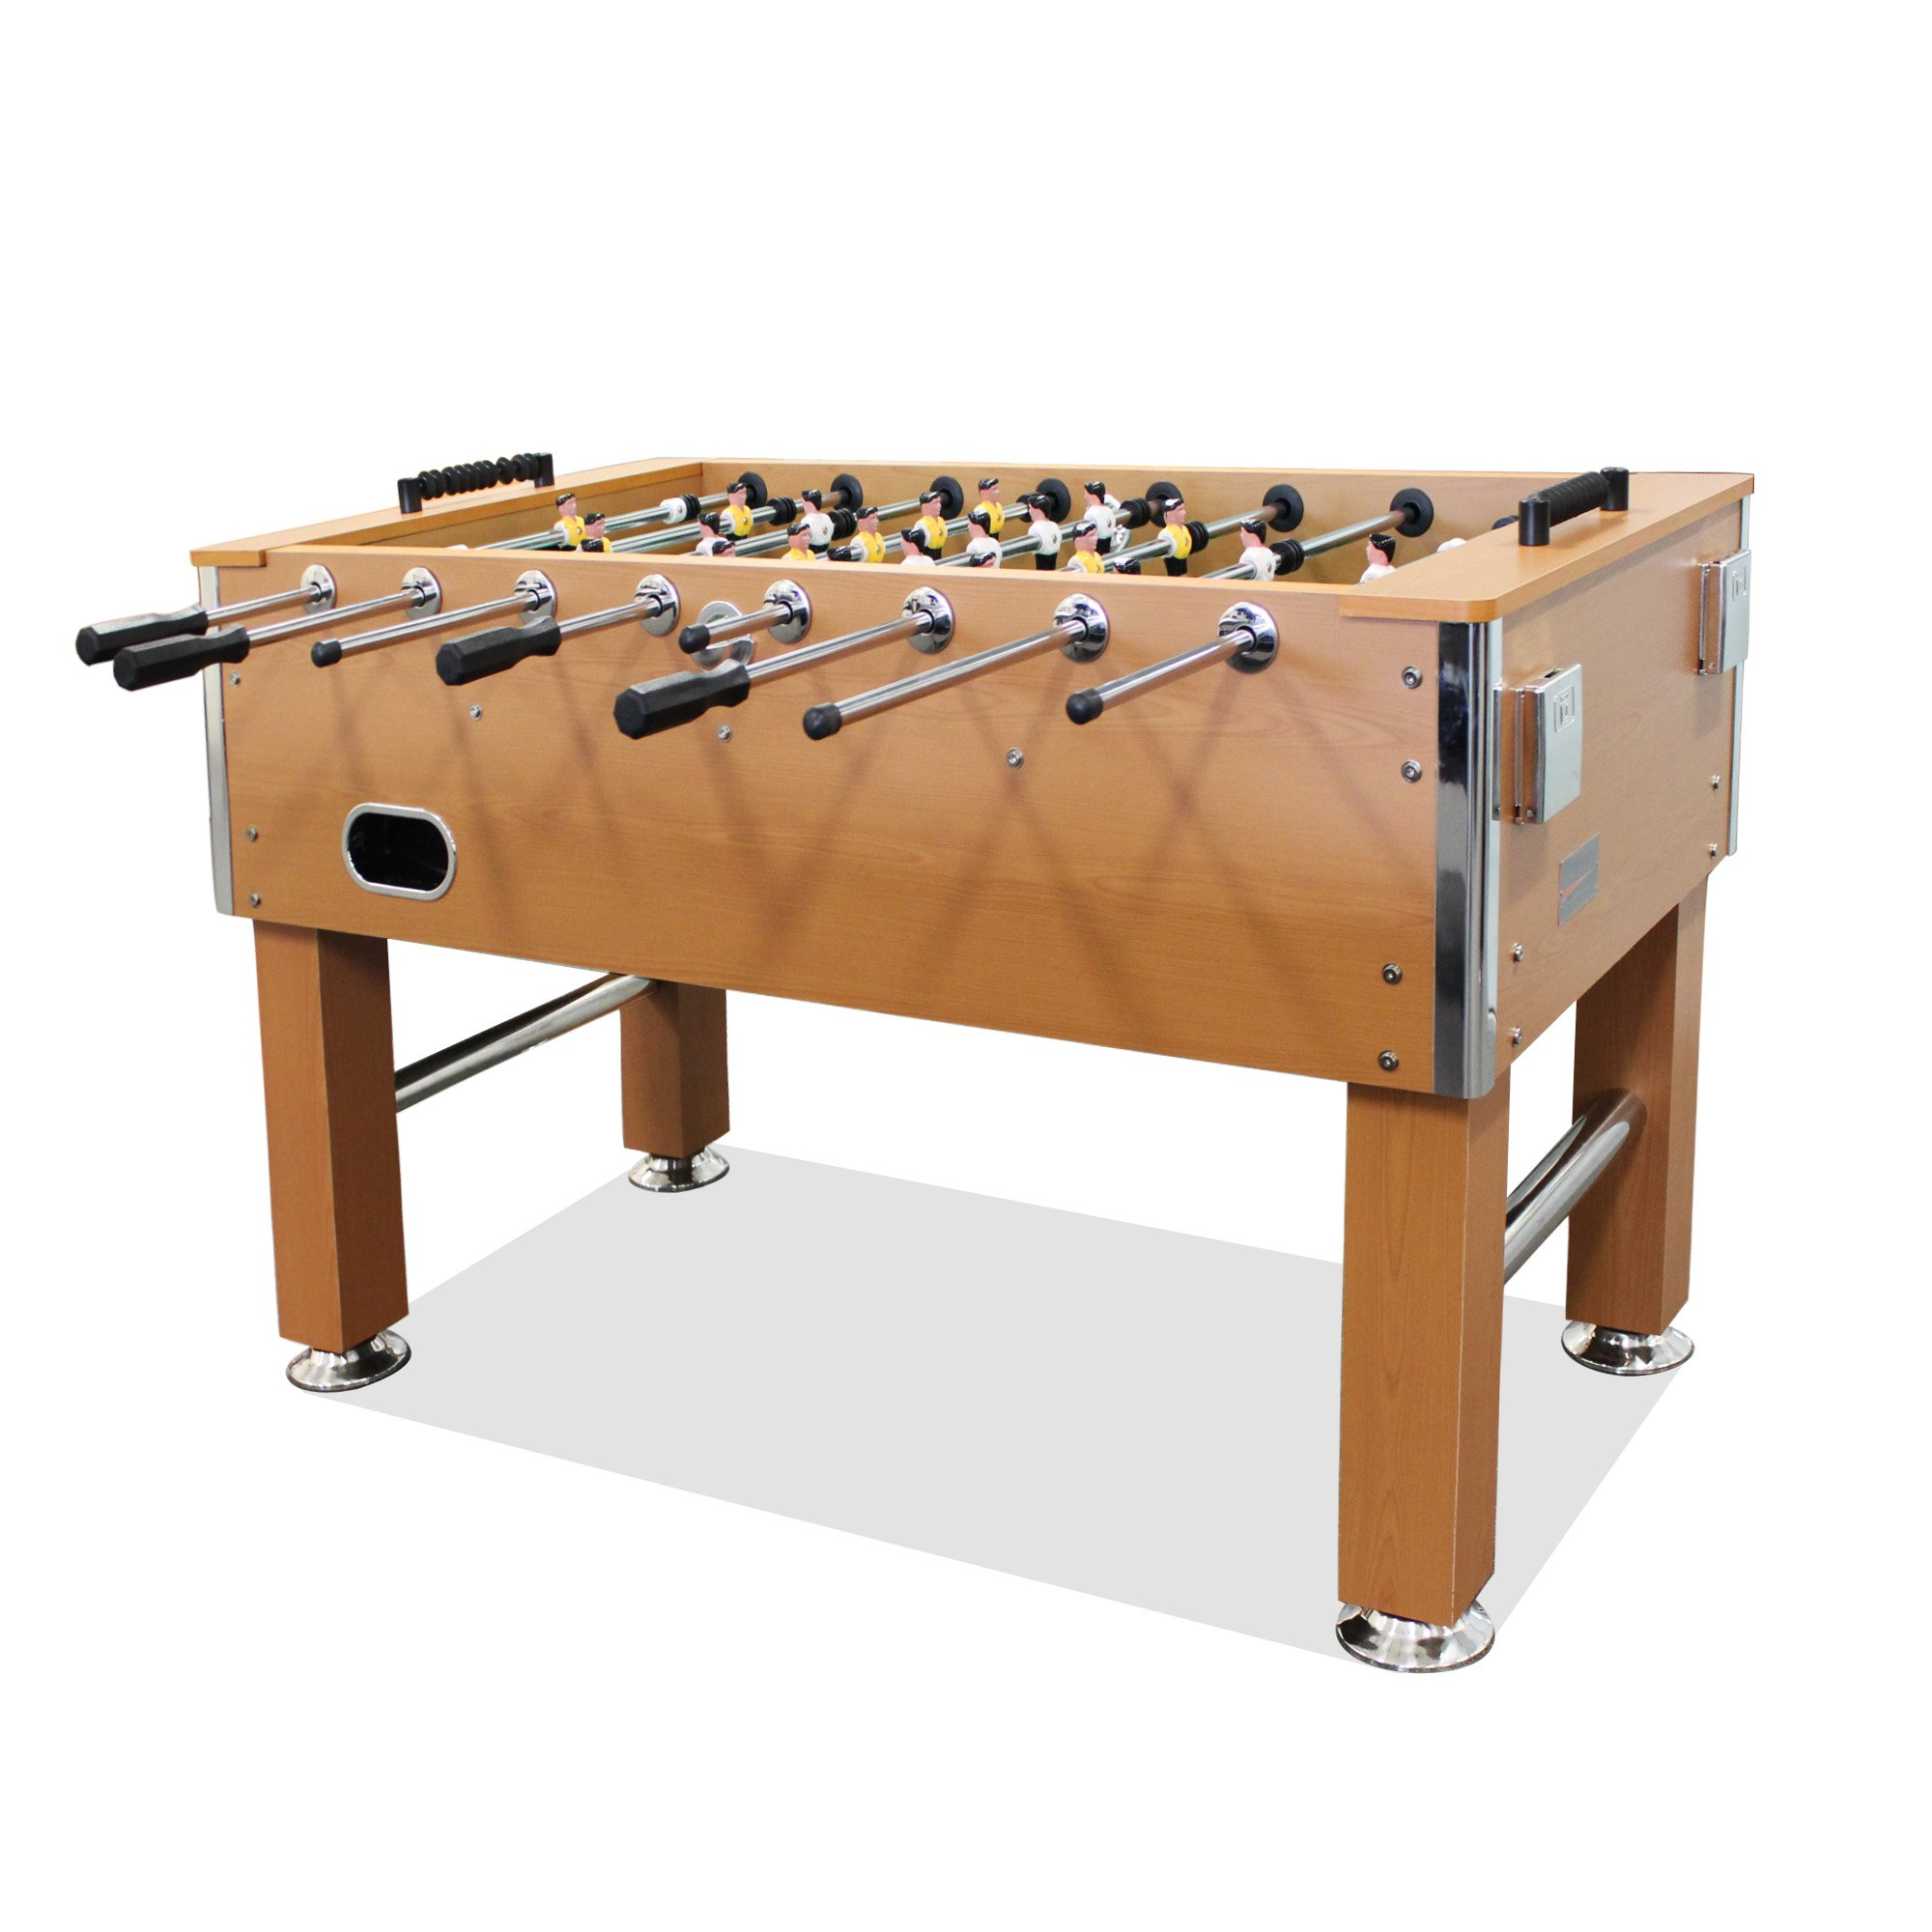 T&R sports 5FT Soccer Foosball Table Heavy Duty for Pub Game Room with Drink Holders, Oak